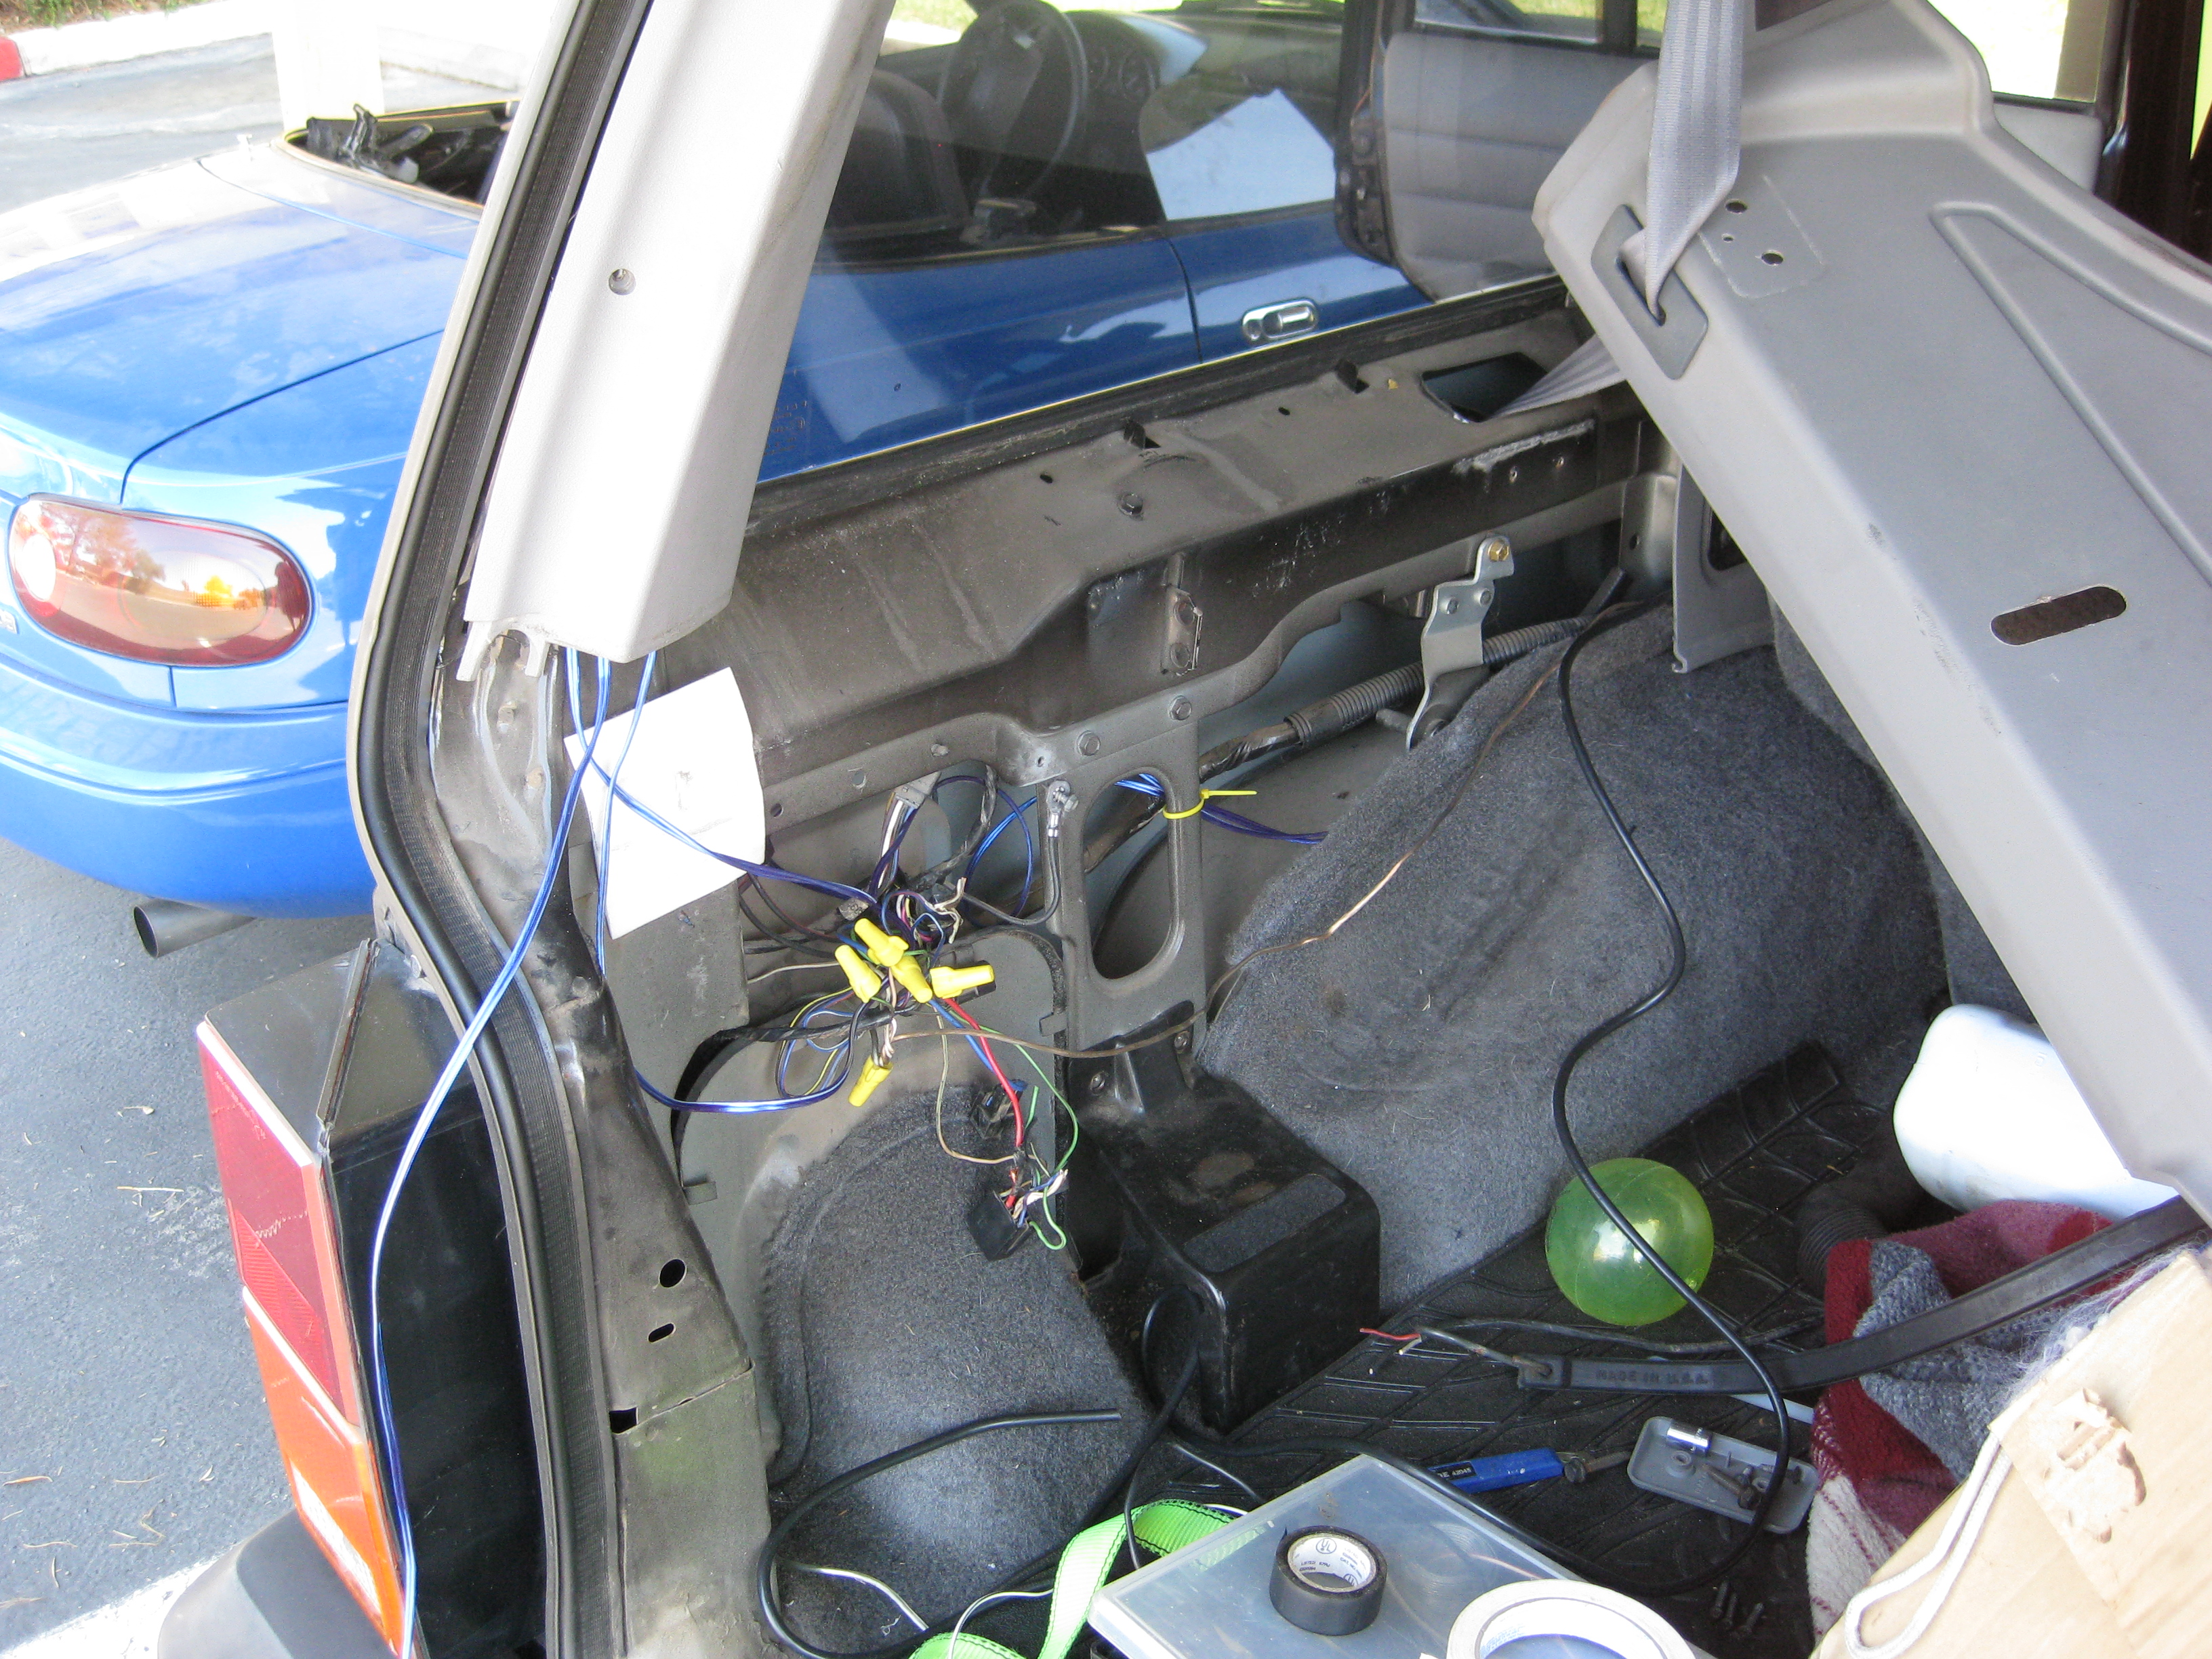 Picture of Setting Up Some Wires in the Truck